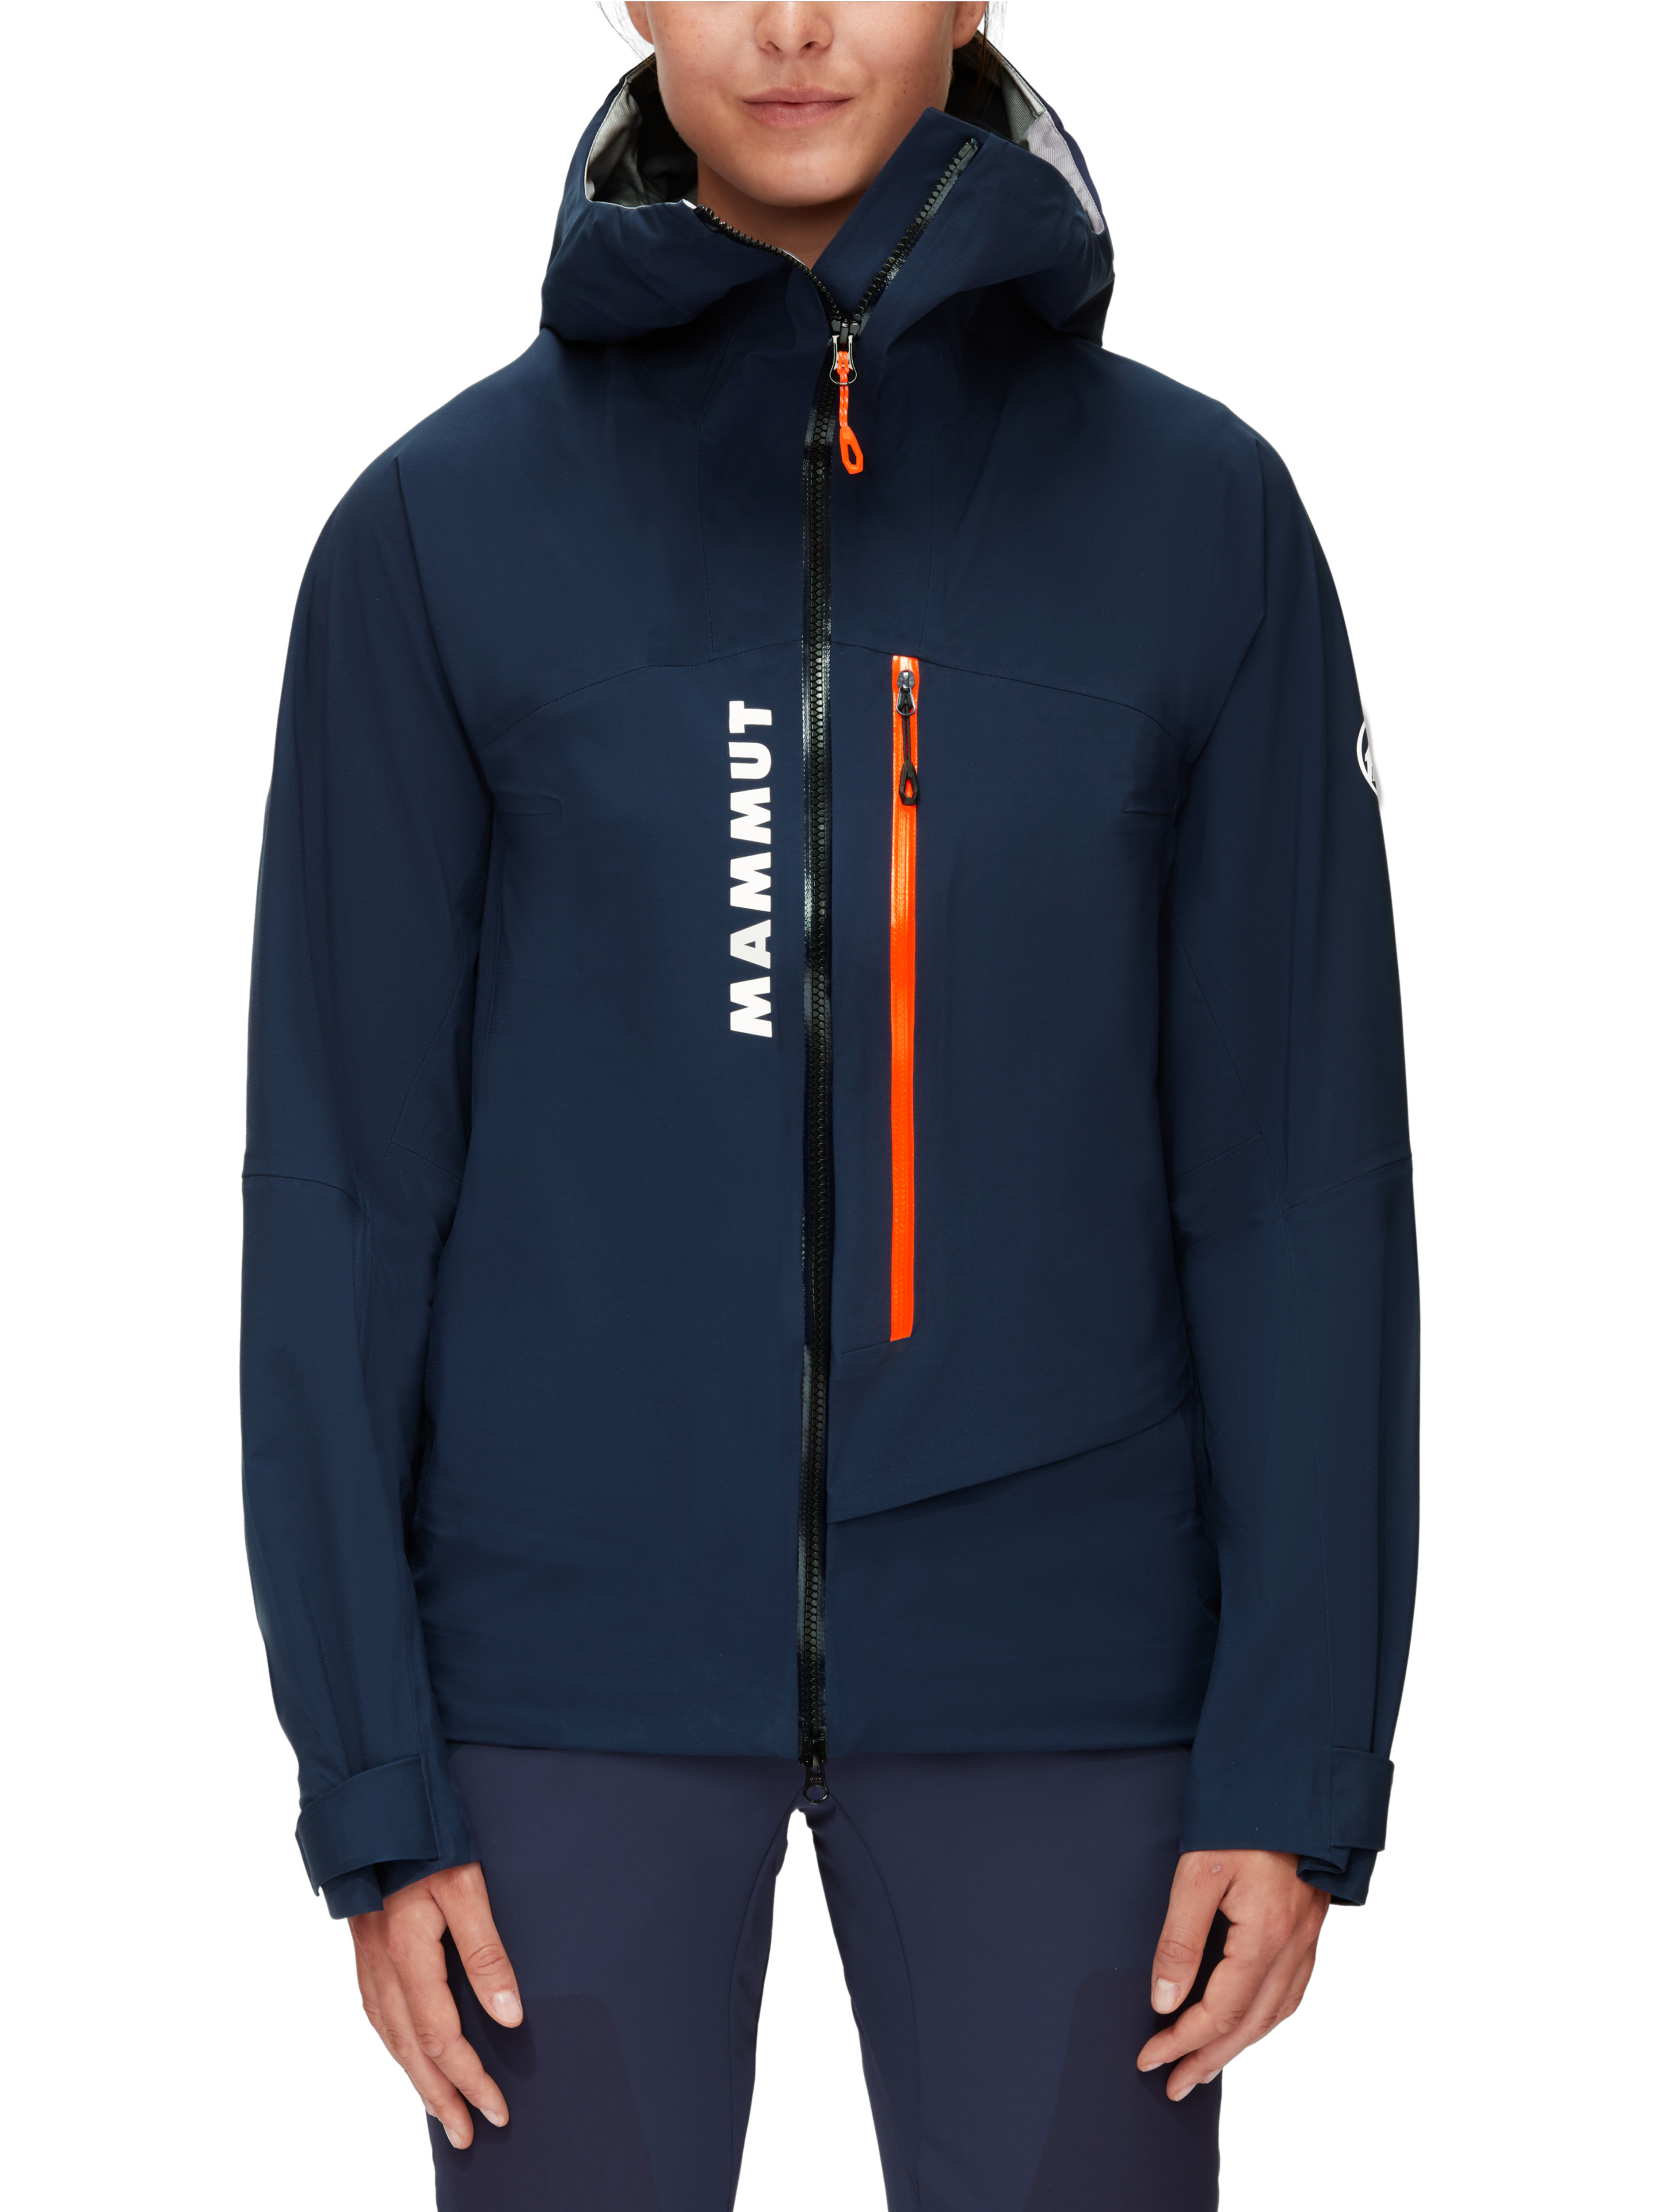 Aenergy Air HS Hooded Jacket Women product image